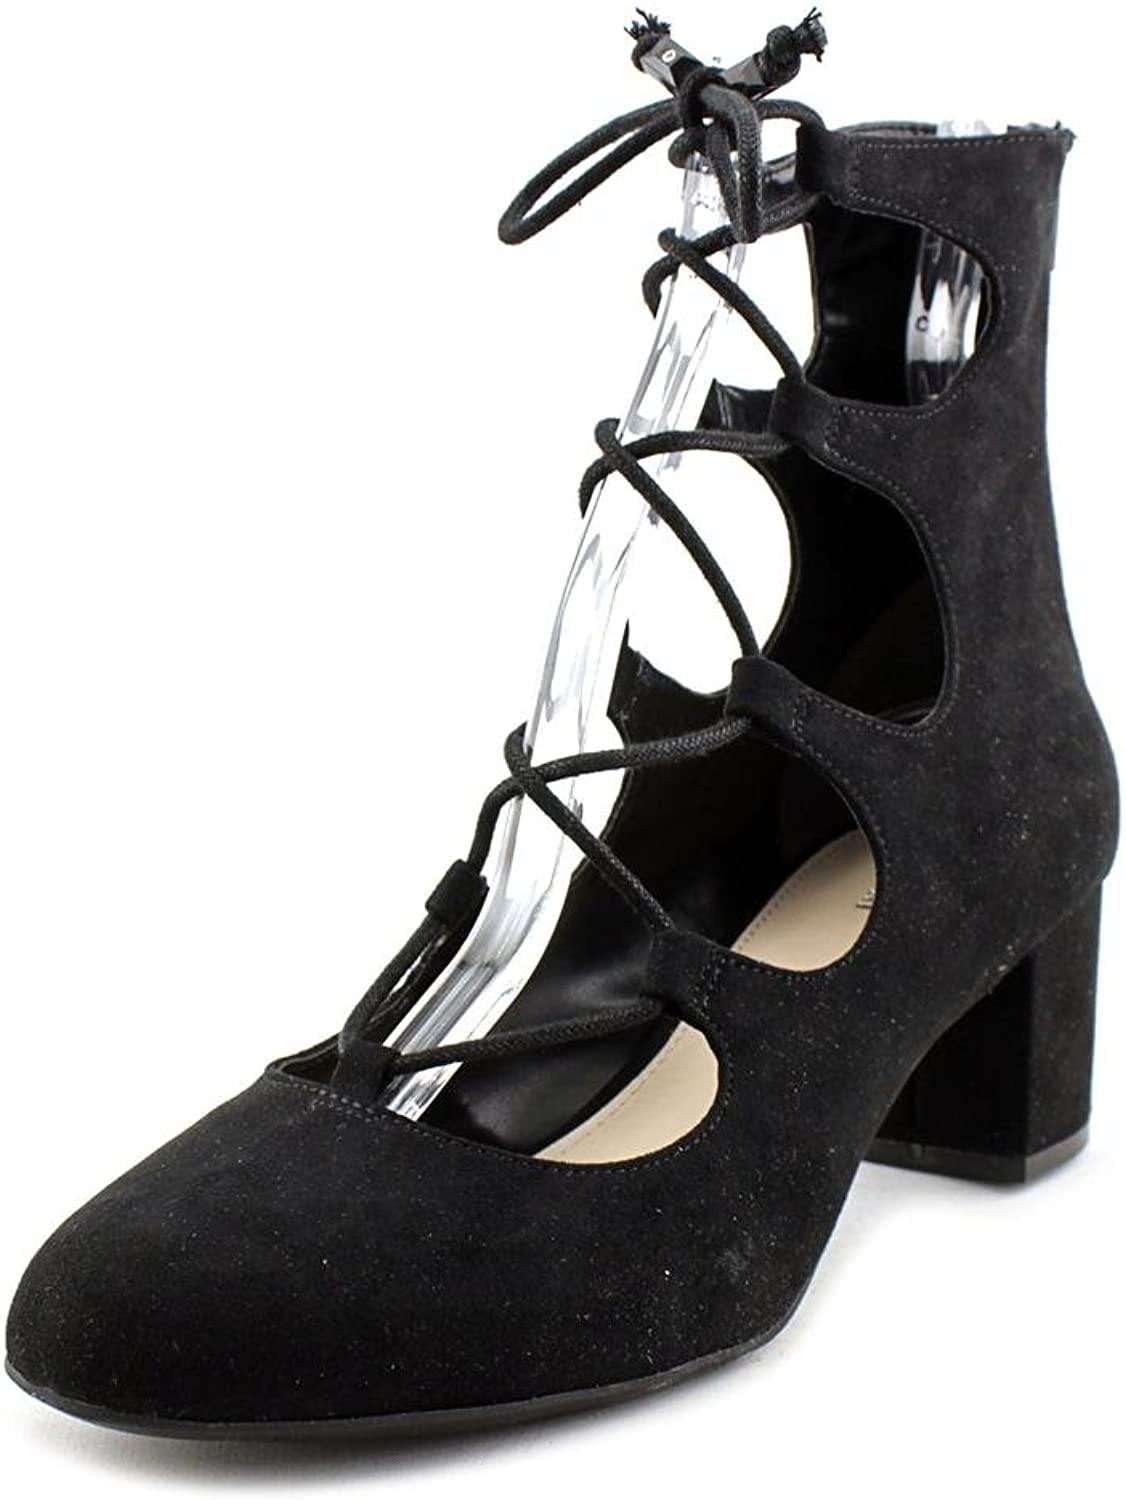 Bar III Percy Women US 7.5 Black Ankle Boot